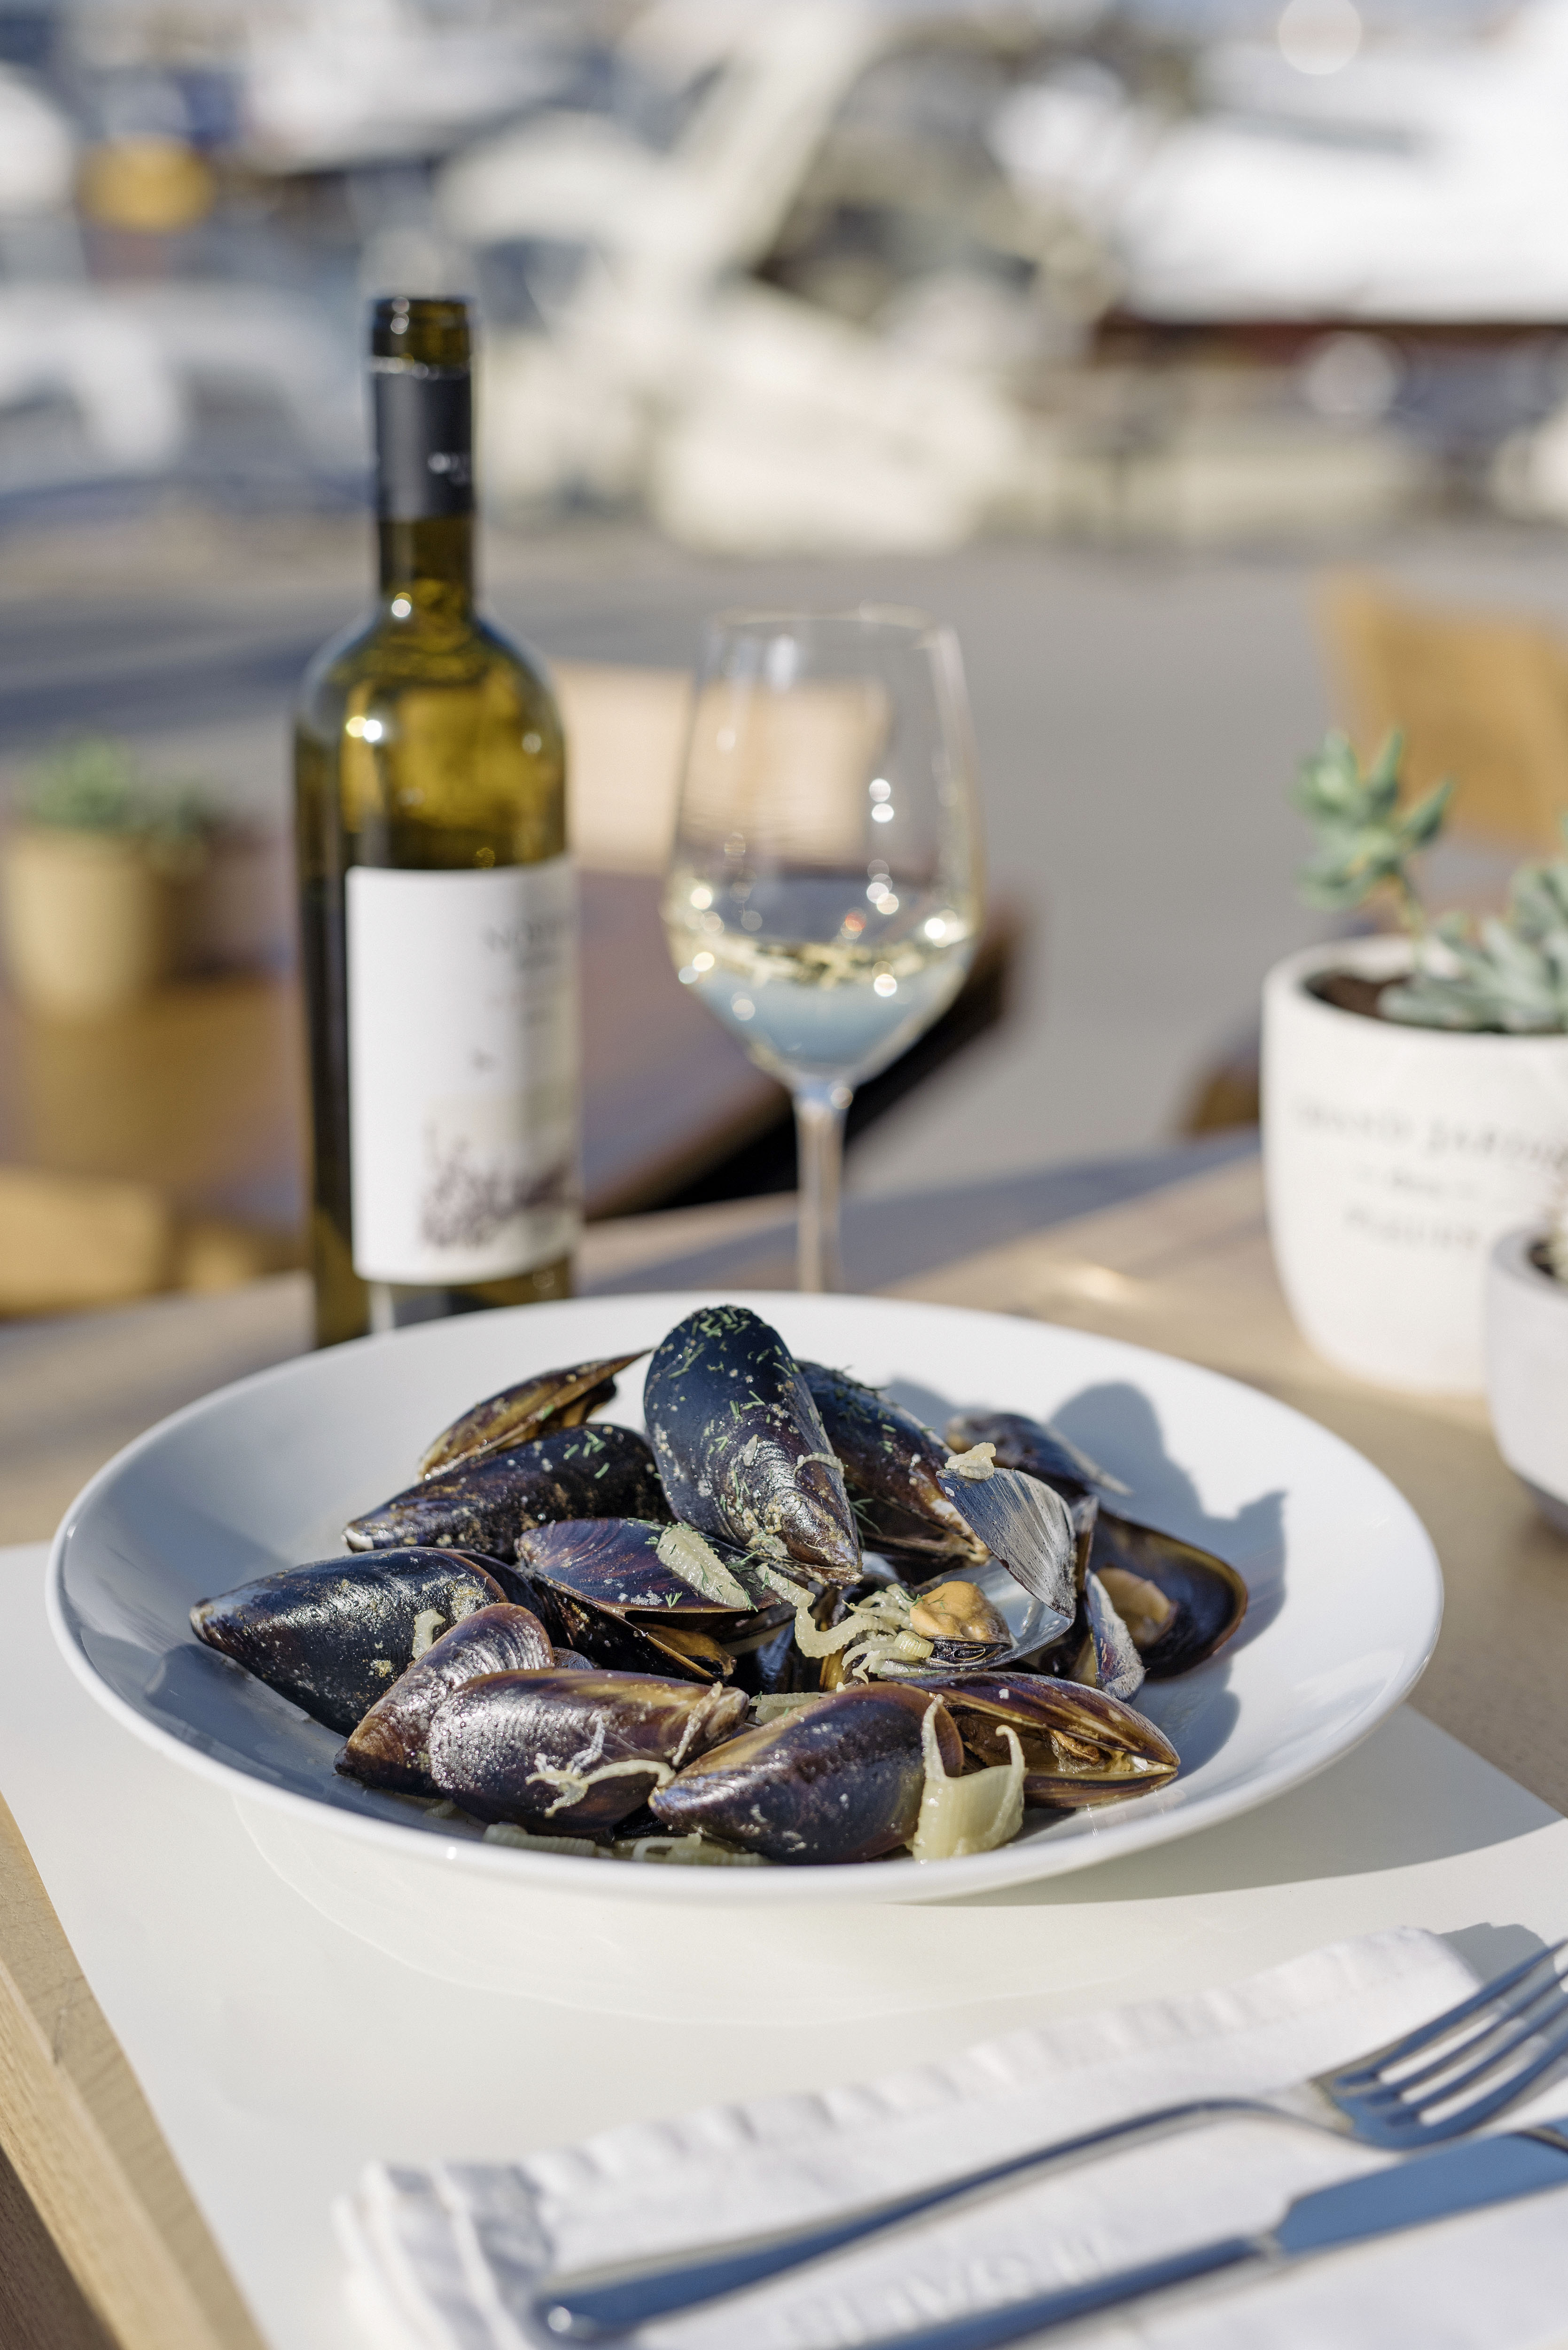 Mussels at Salis